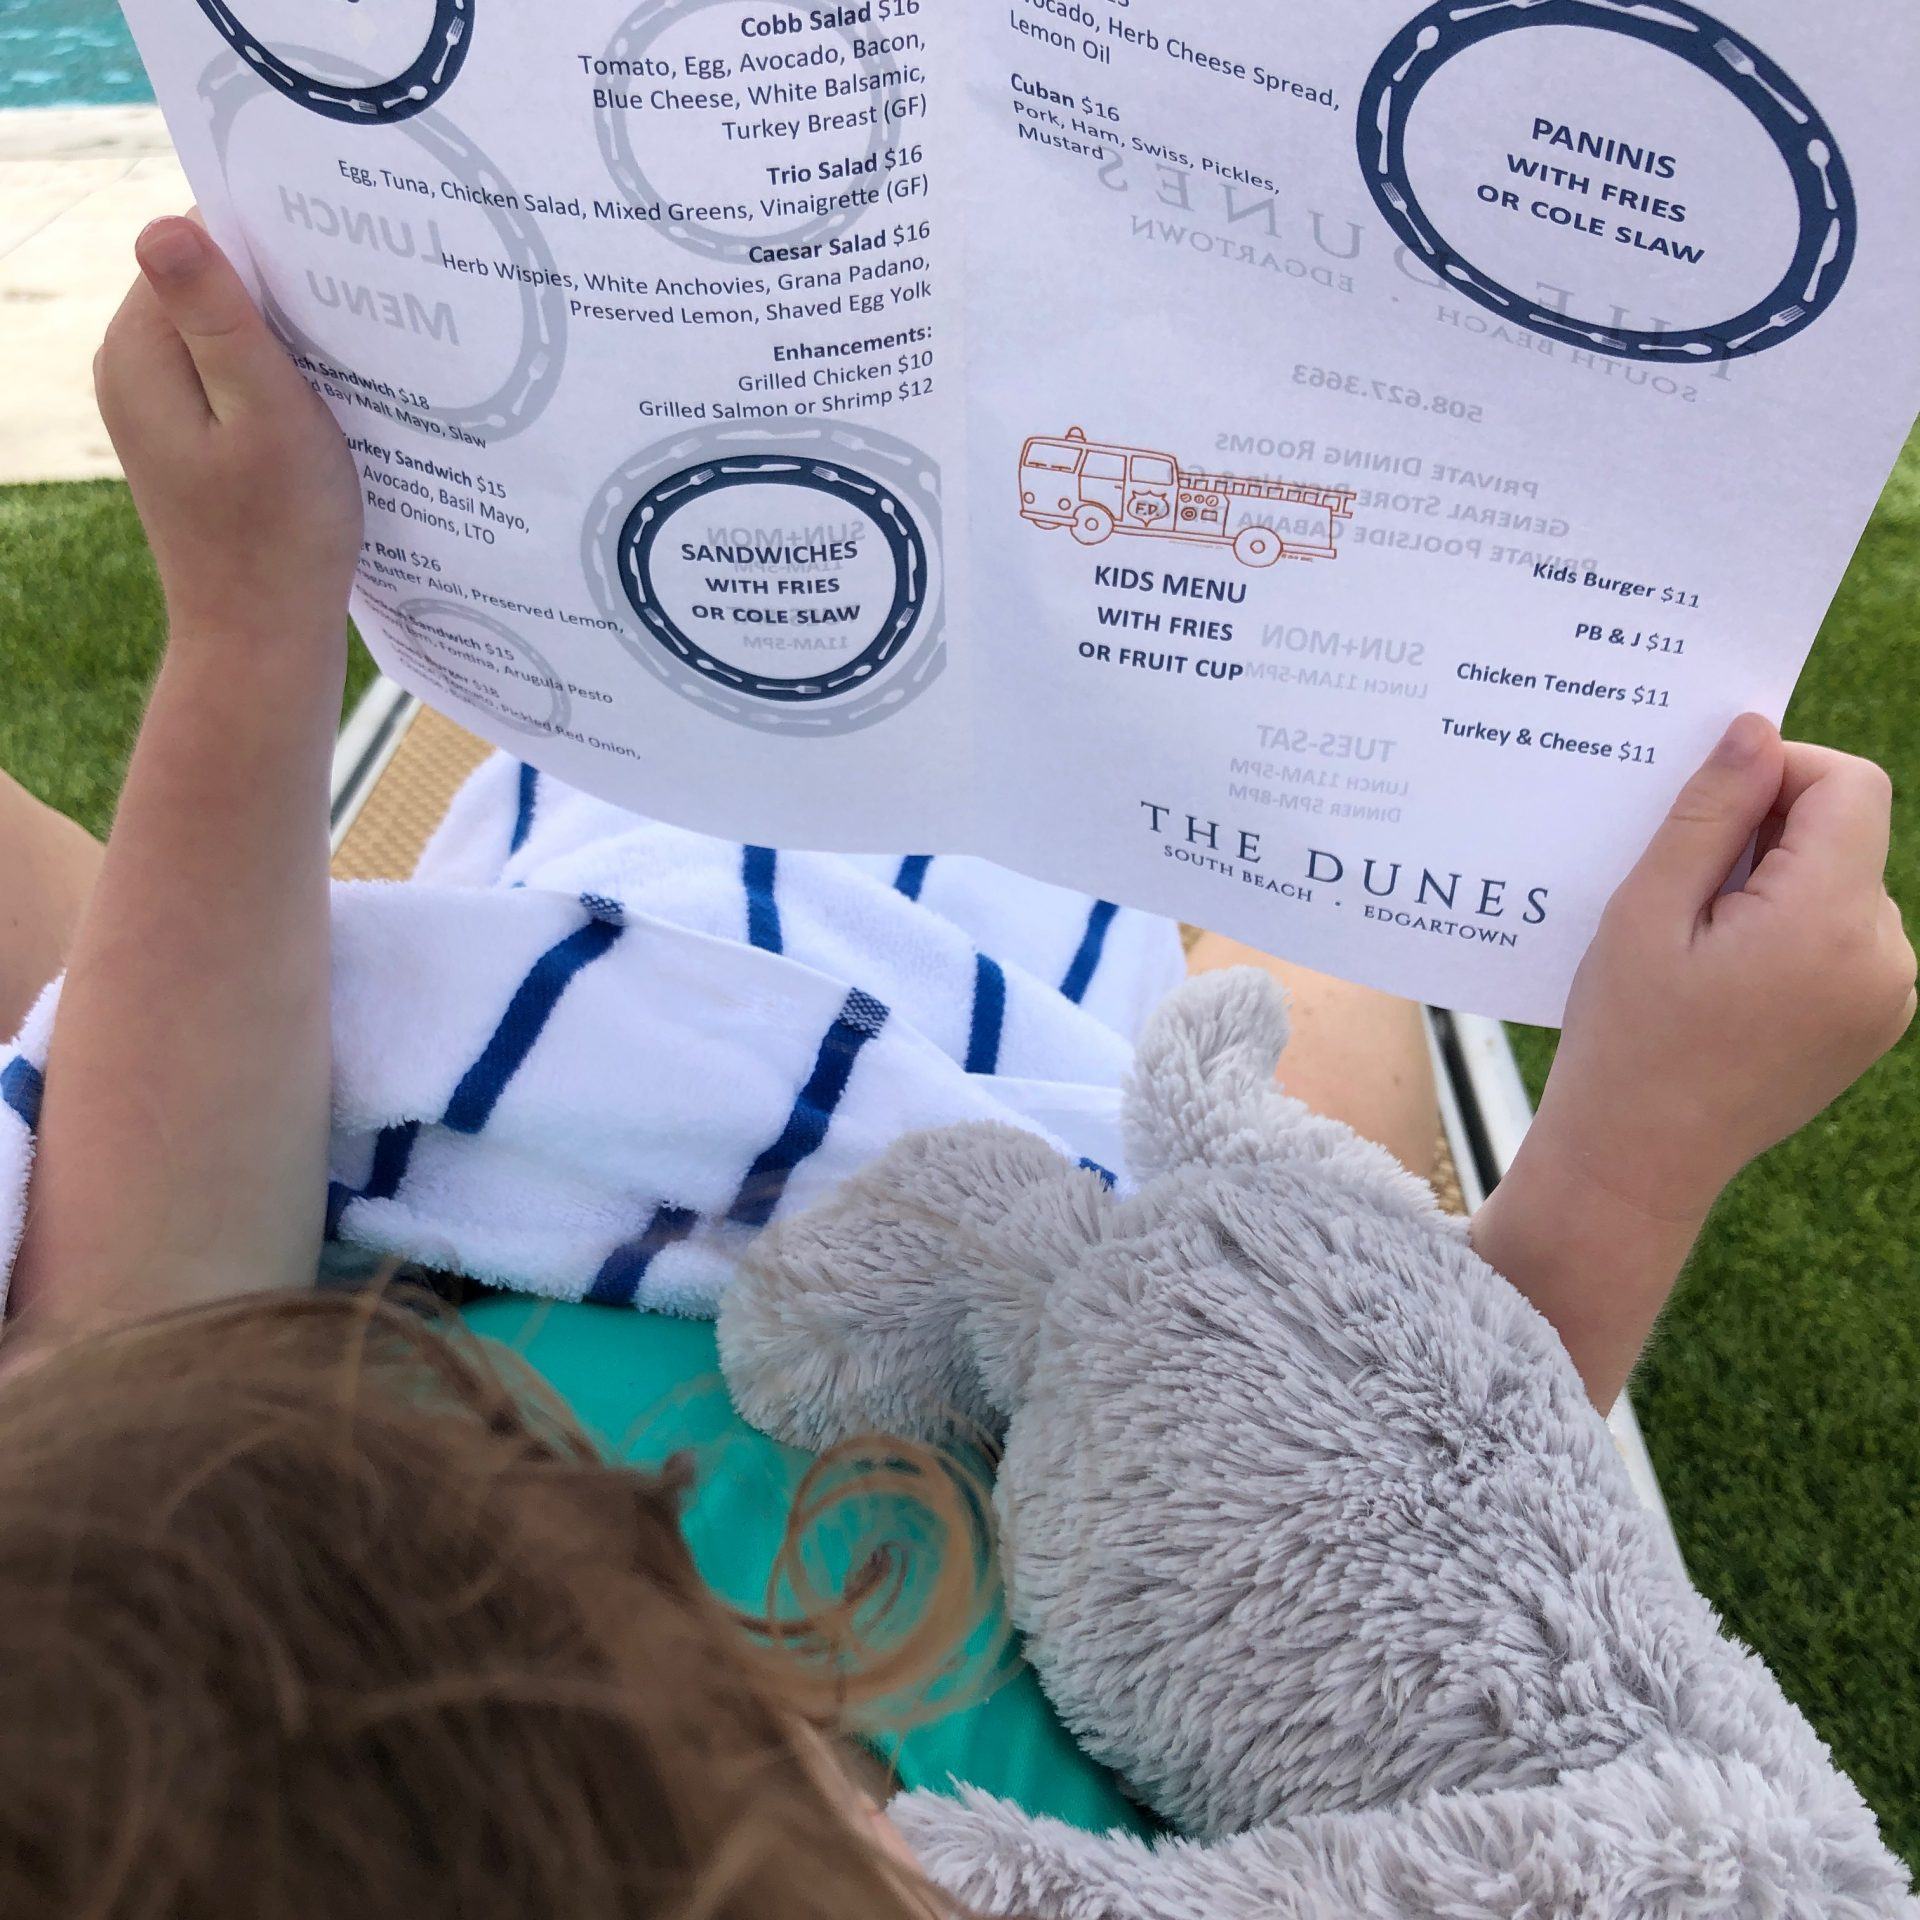 little girl reading poolside grill menu Winnetu Martha's Vineyard